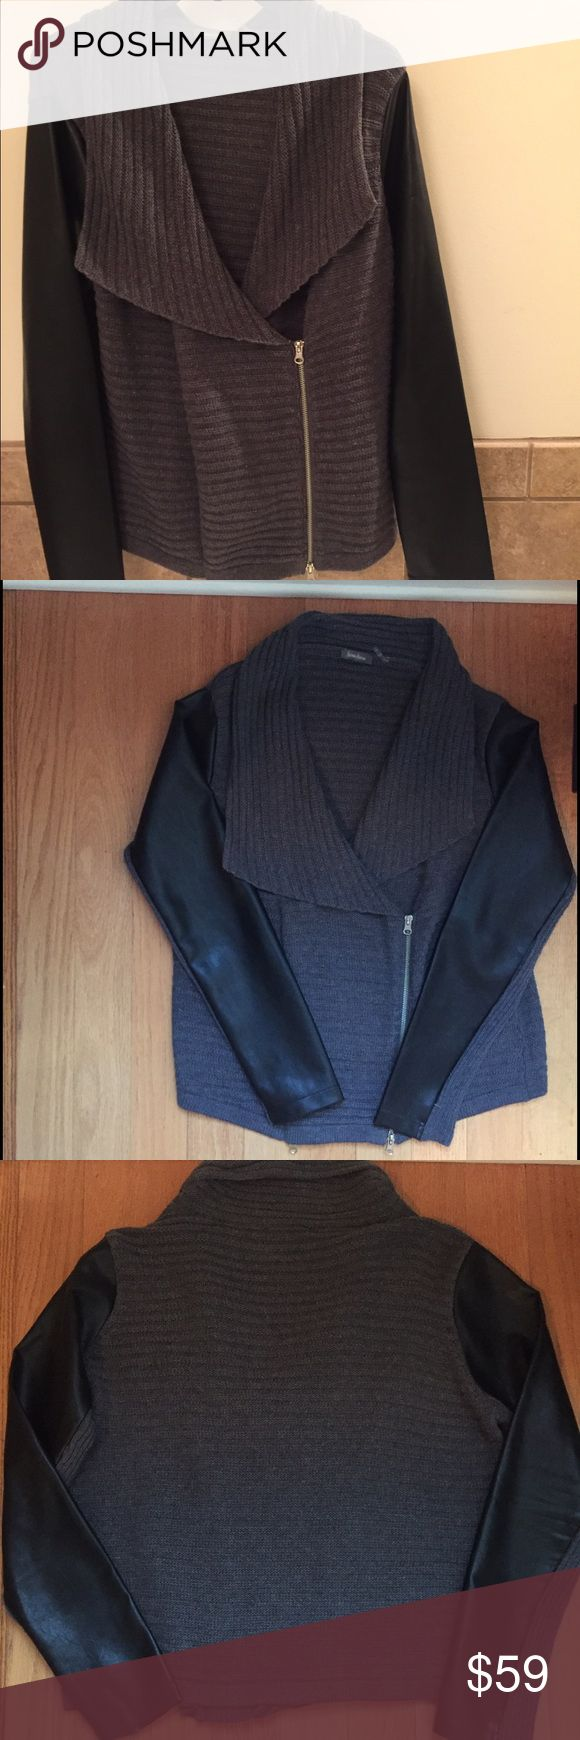 Neiman Marcus Gray and Black Moto Sweater Only worn once Neiman Marcus Gray Moto Sweater with faux leather black sleeves. Hidden inside zipper and front zip. Material: 35% Viscose, 35% Cotton, 15% Nylon, 10% Angola and 5% Wool. Neiman Marcus Sweaters